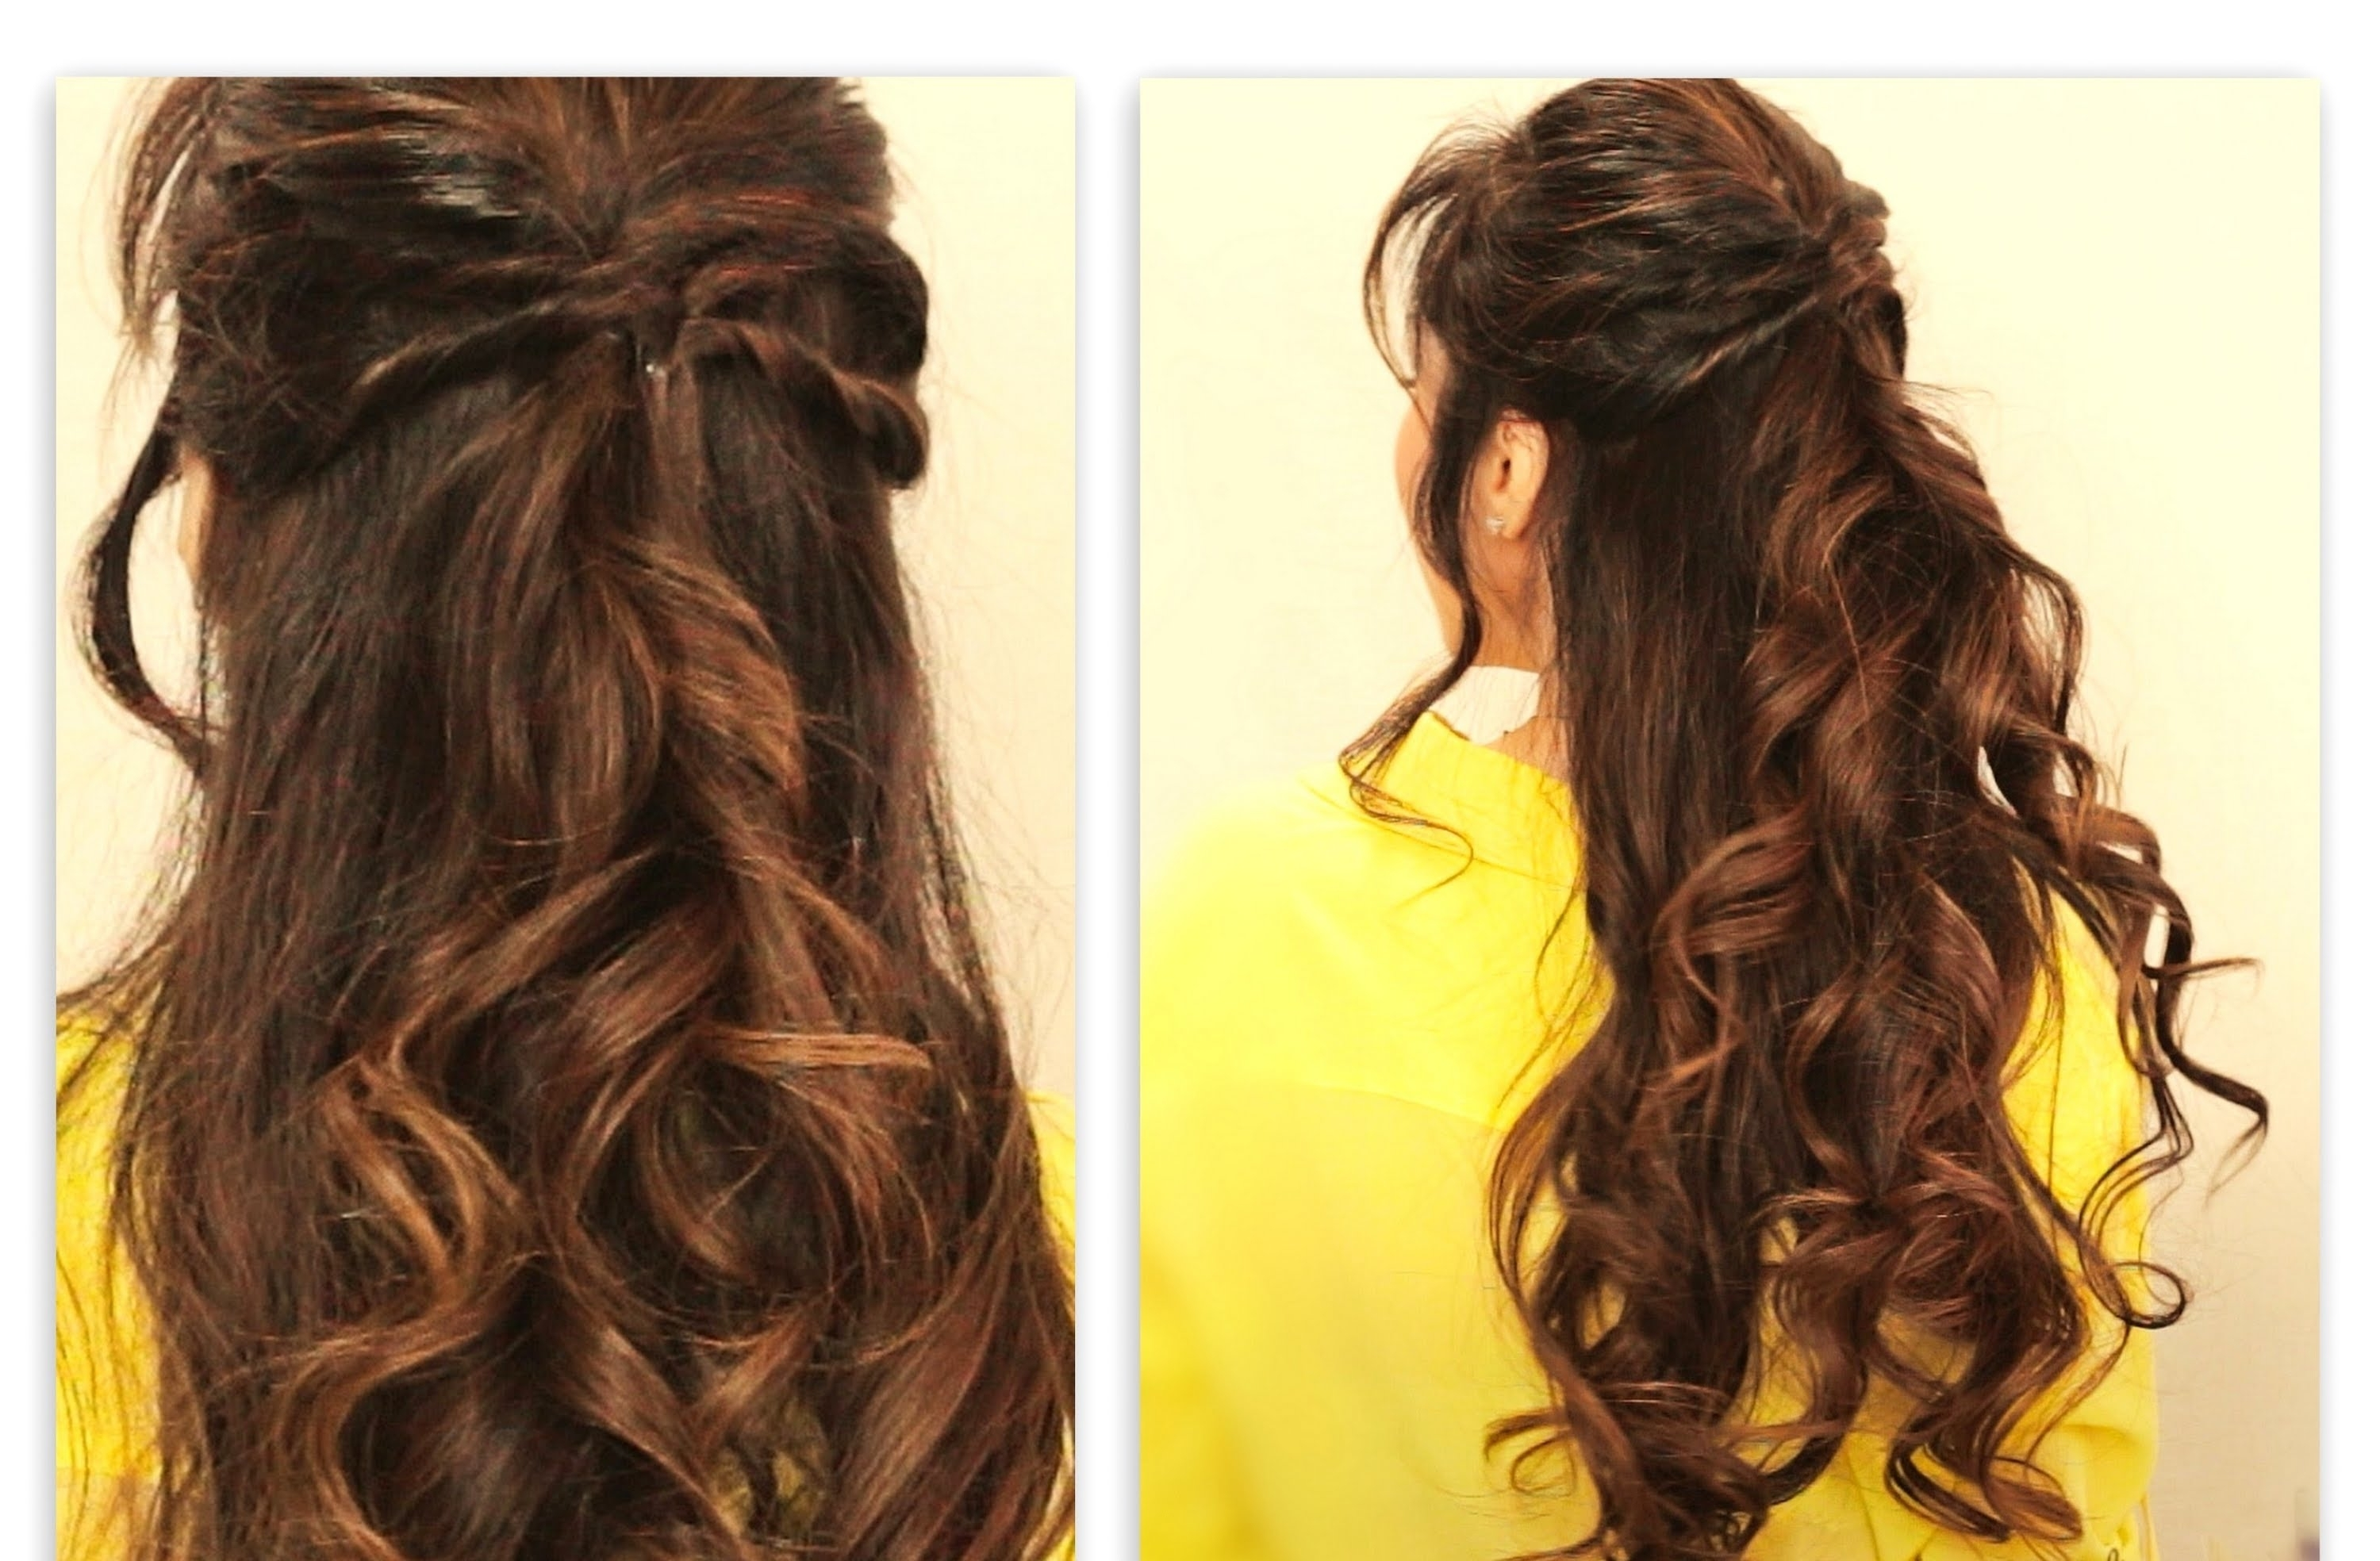 Current Soft Half Up Ponytail Hairstyles Regarding ☆ Cute Twisted Flip Half Up Half Down Fall Hairstyles For Medium (View 6 of 20)